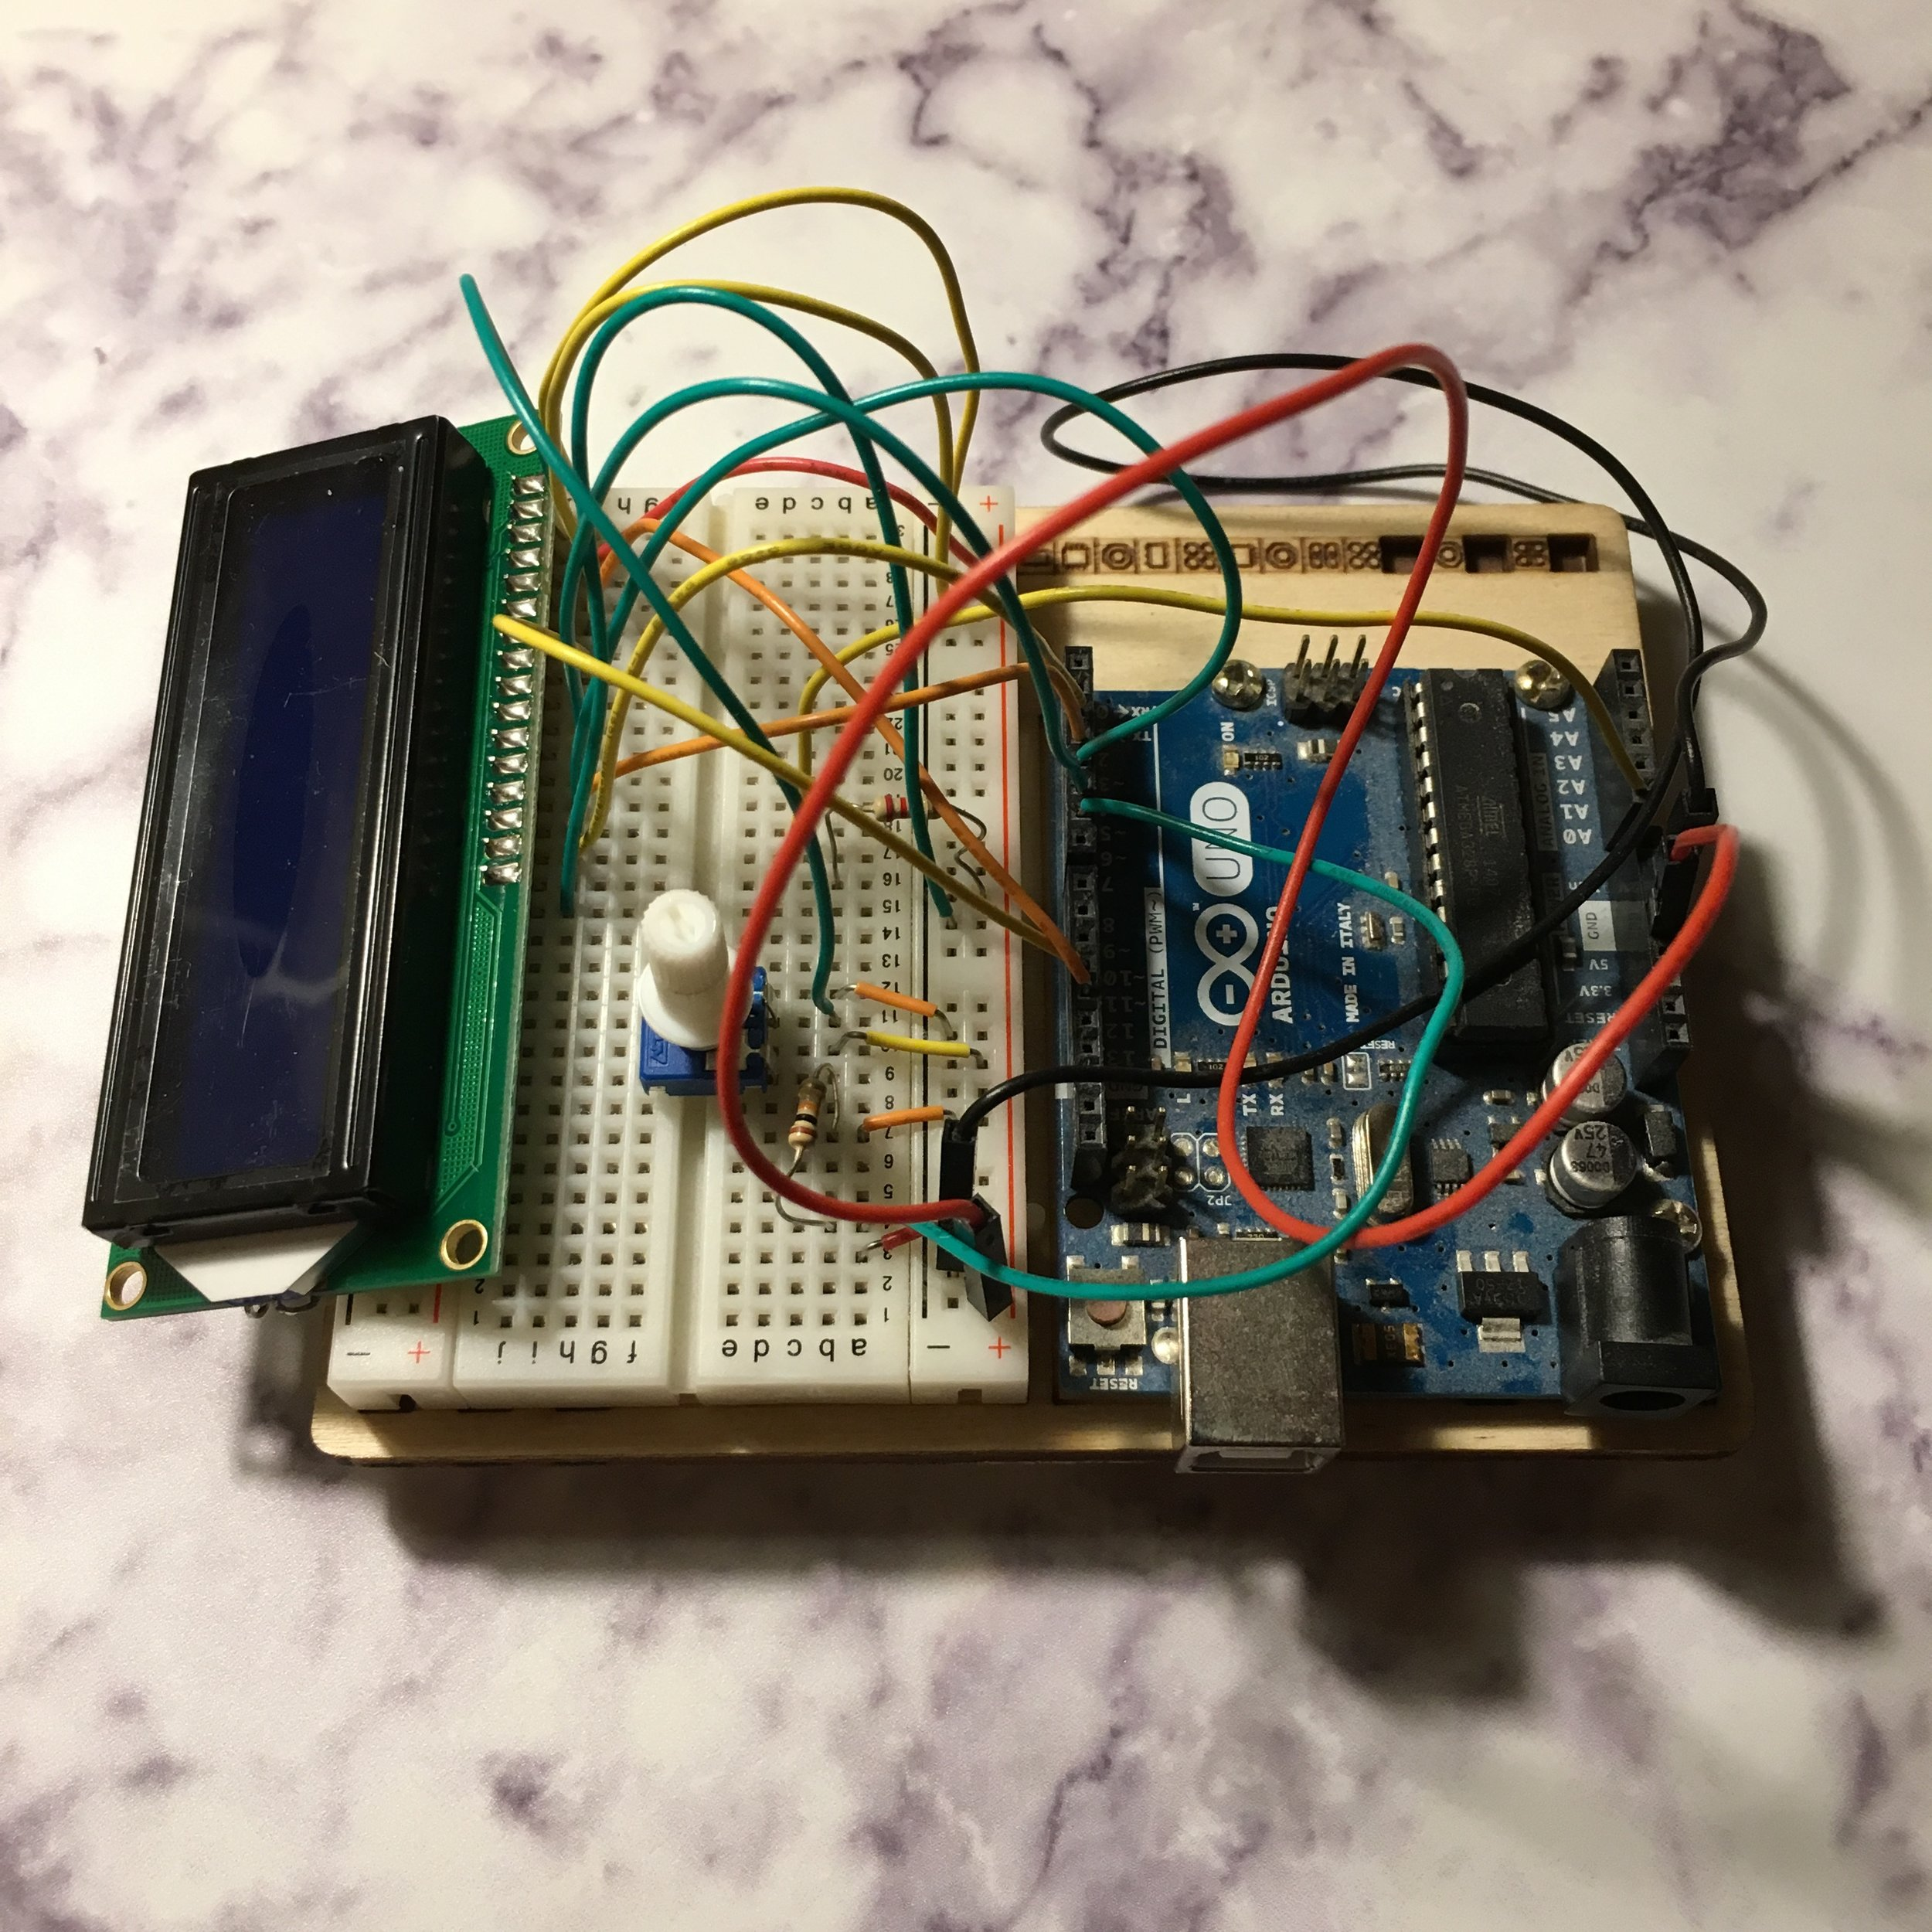 Work in progress: A little device to tell the future. The 'Crystal Ball' board wiring on the Arduino. Eventually, a series of answers will appear on the screen to tell us what the future holds.